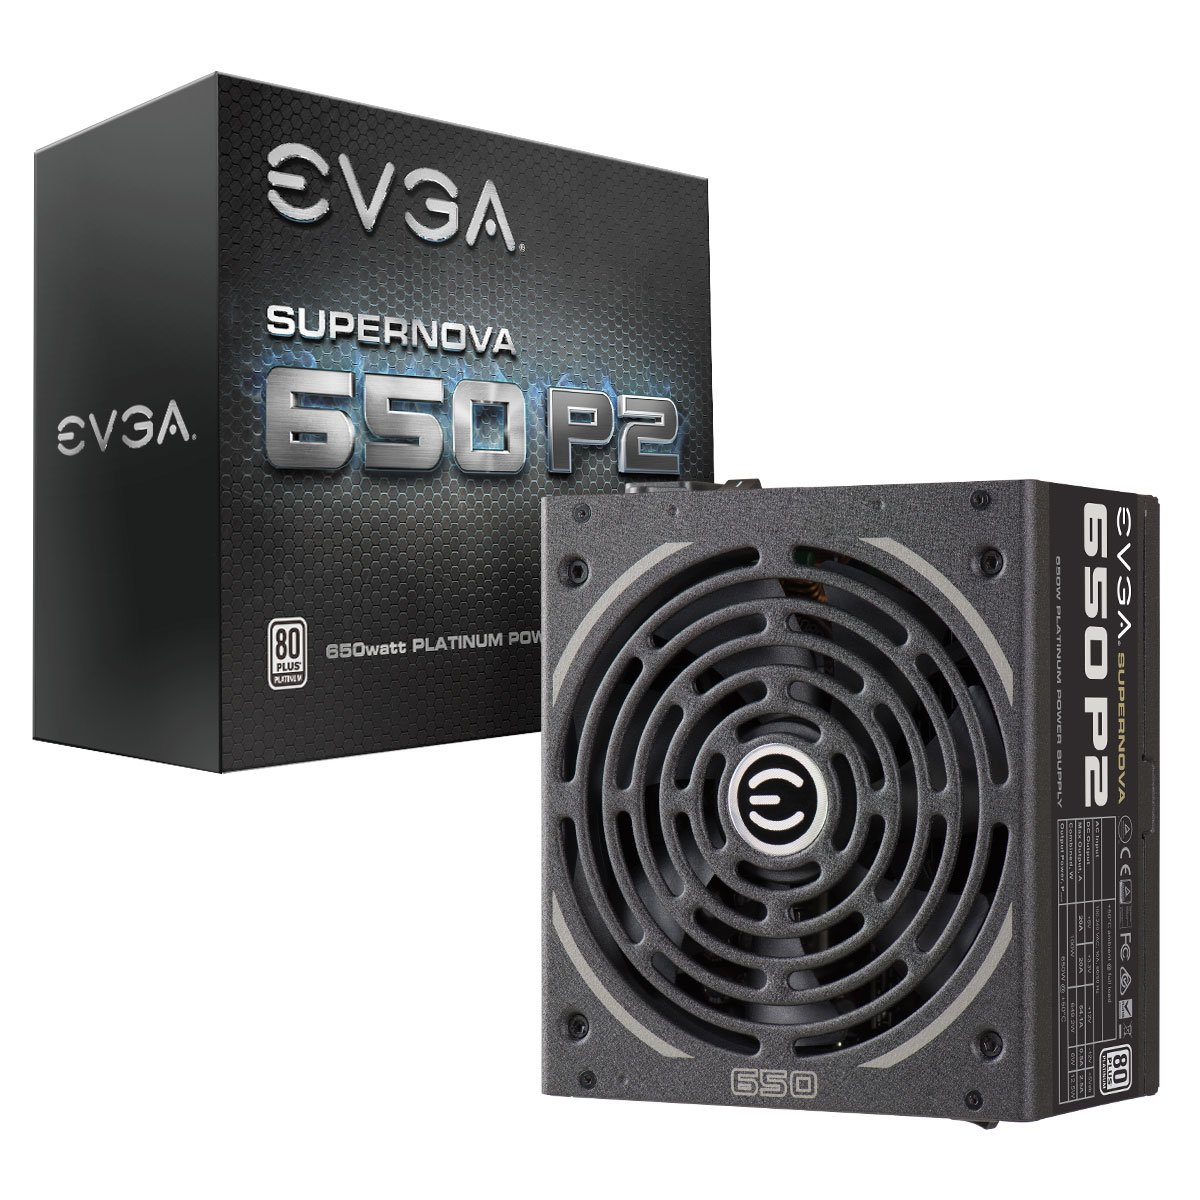 EVGA SuperNOVA 650 P2, 80+ PLATINUM 650W , Fully Modular , EVGA ECO Mode, 10 Year Warranty , Includes FREE Power On Self Tester, Power Supply 220-P2-0650-X1